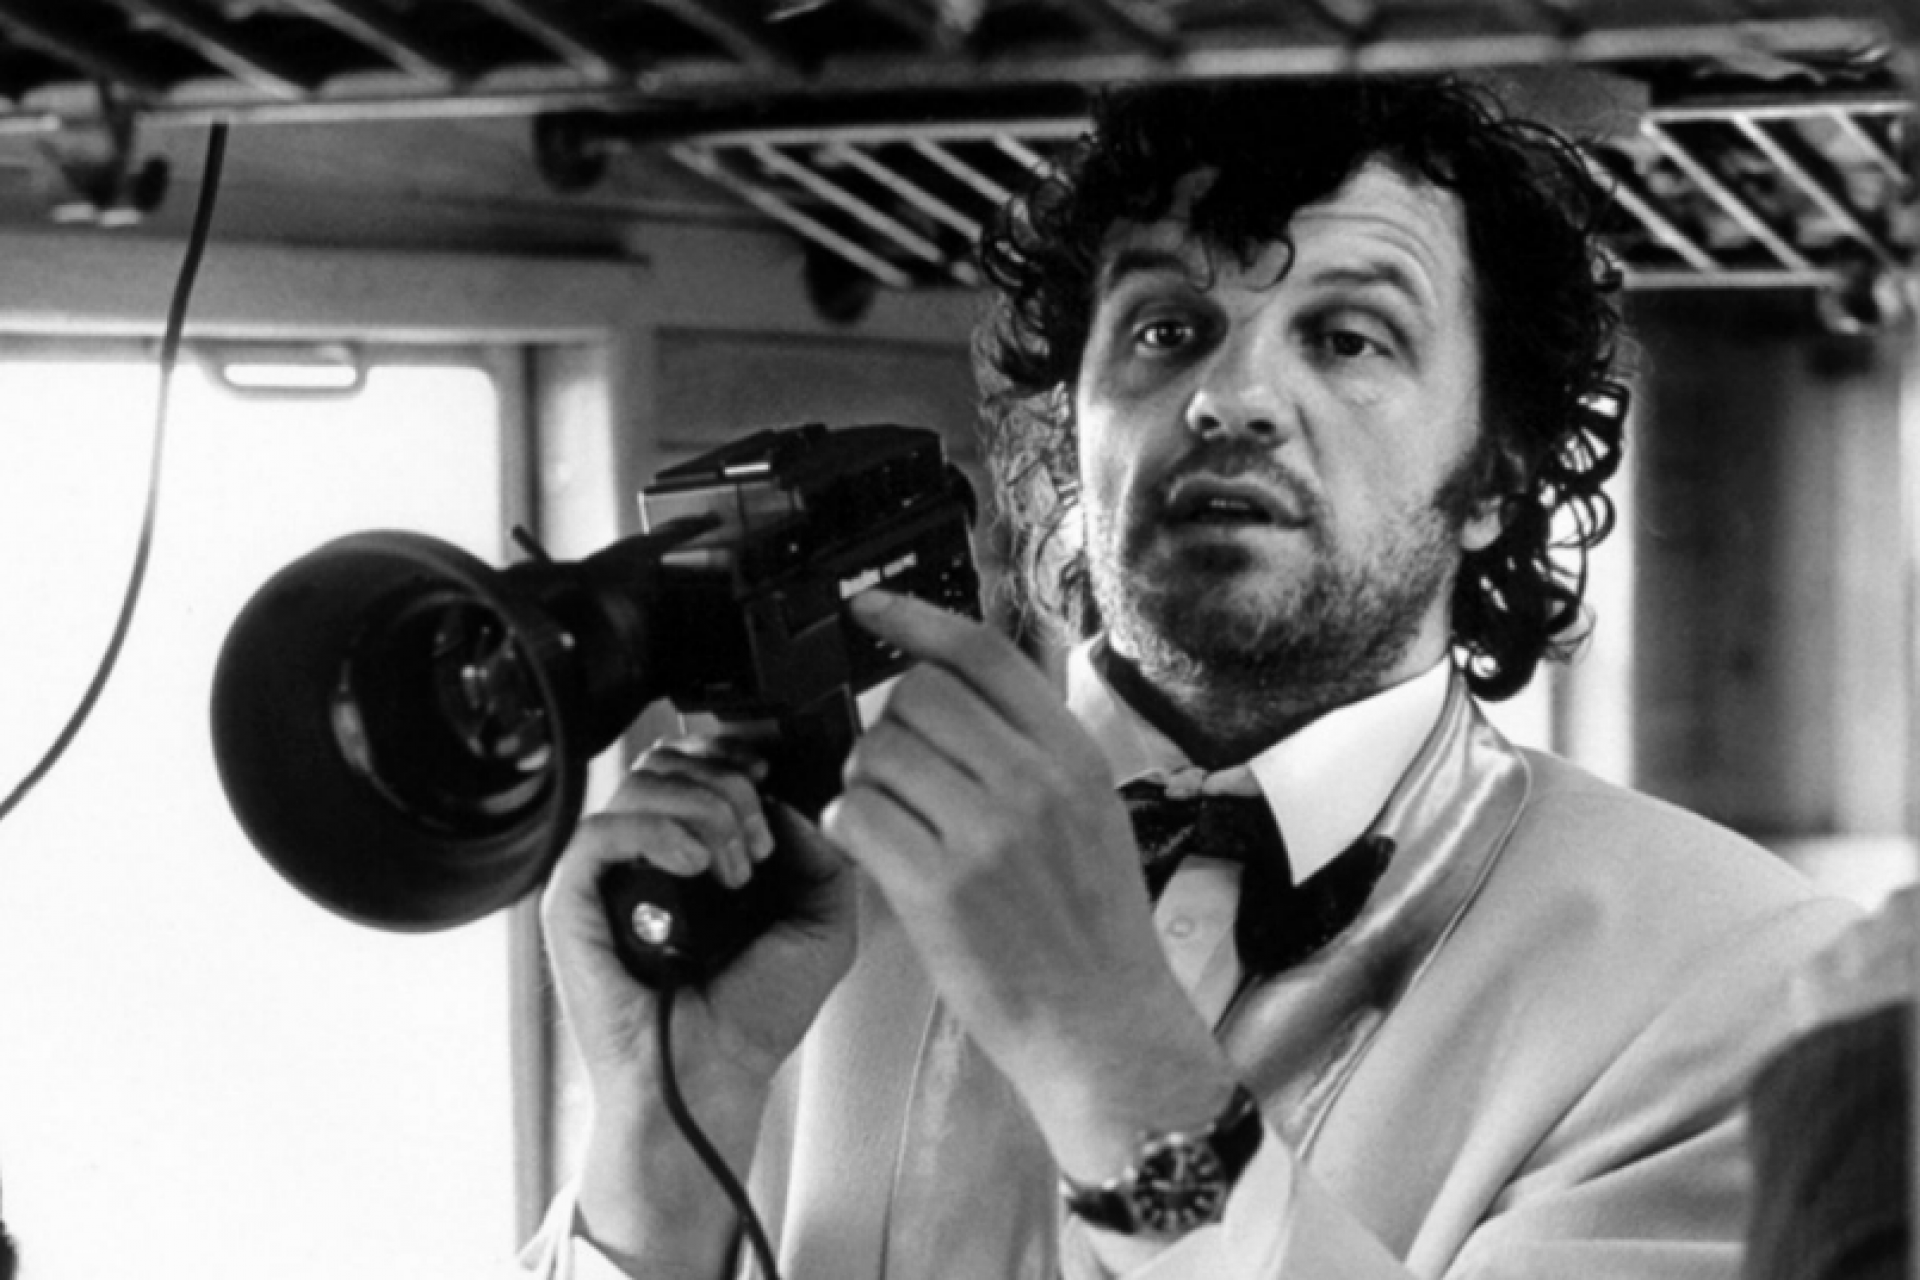 Emir Kusturica will visit the festival Stars on Lake Baikal